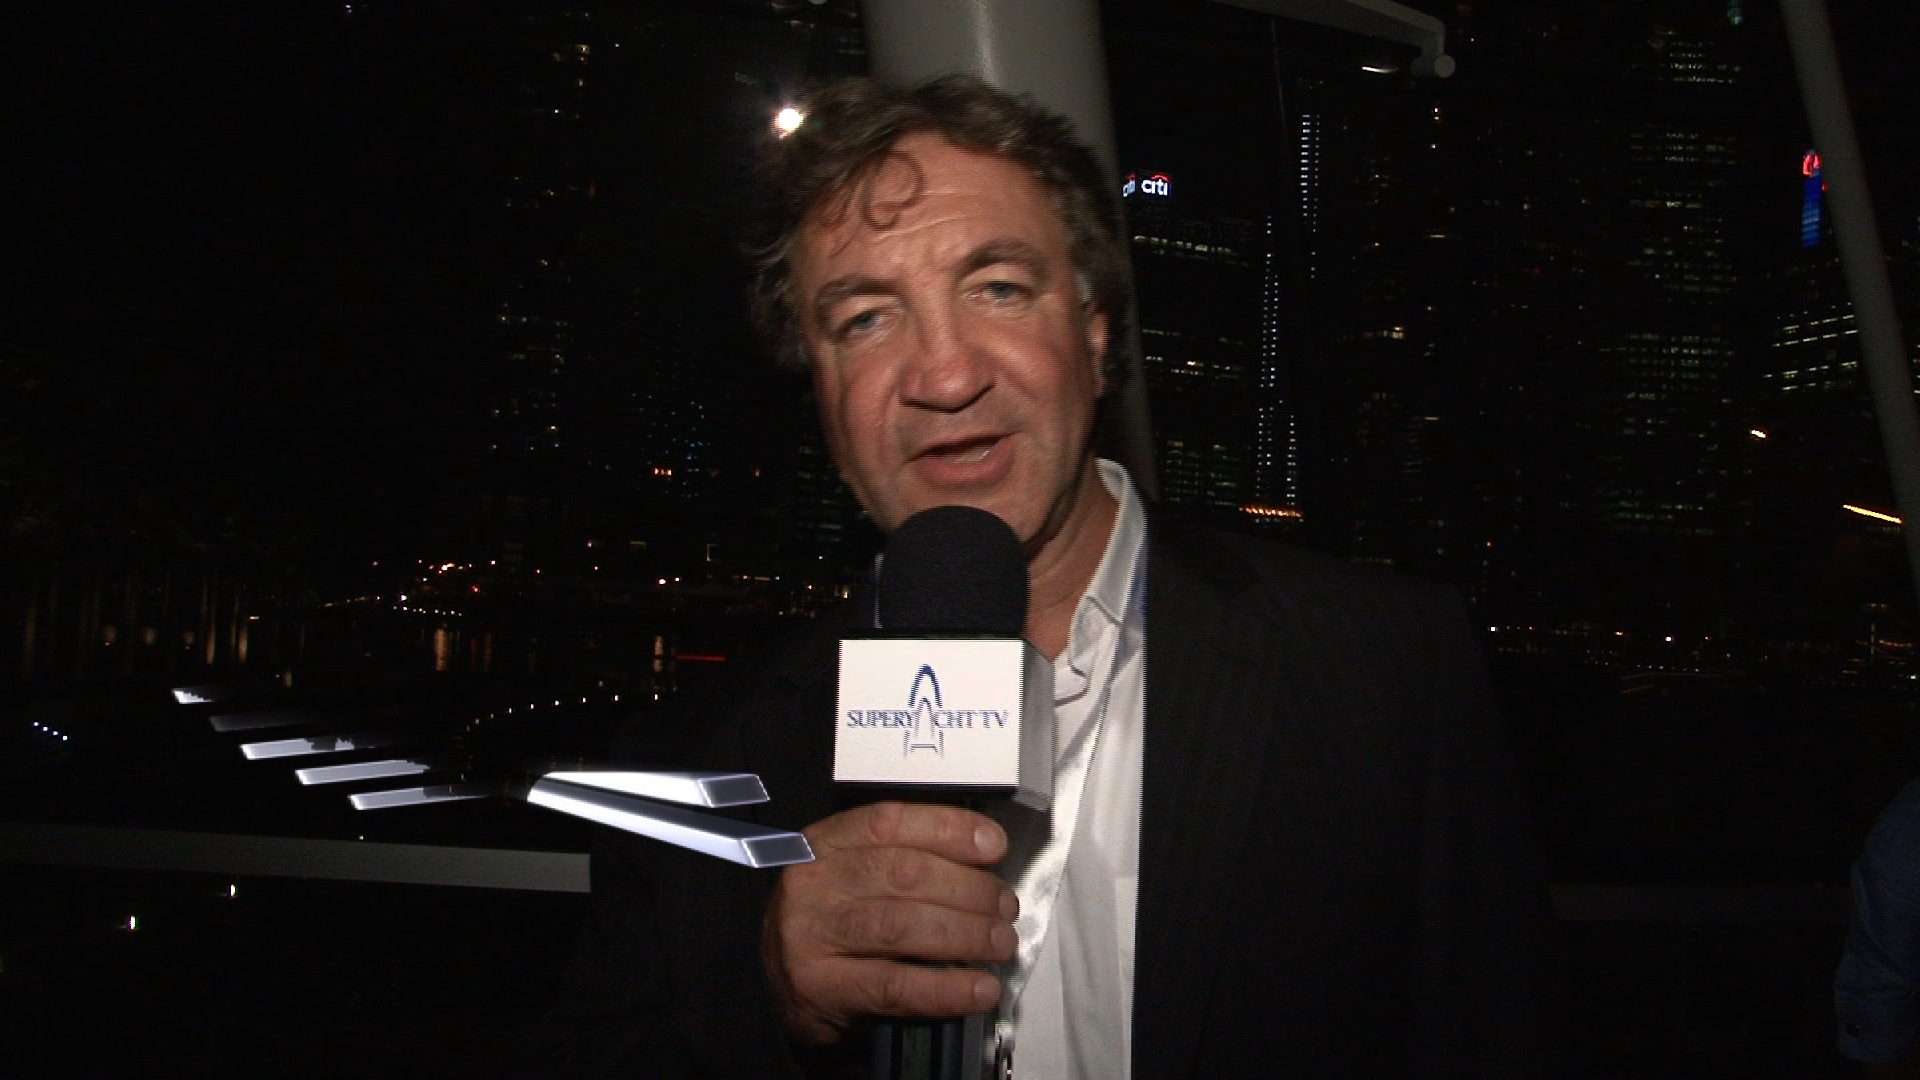 2012 Singapore Yacht Show – Andy Treadwell – What to expect